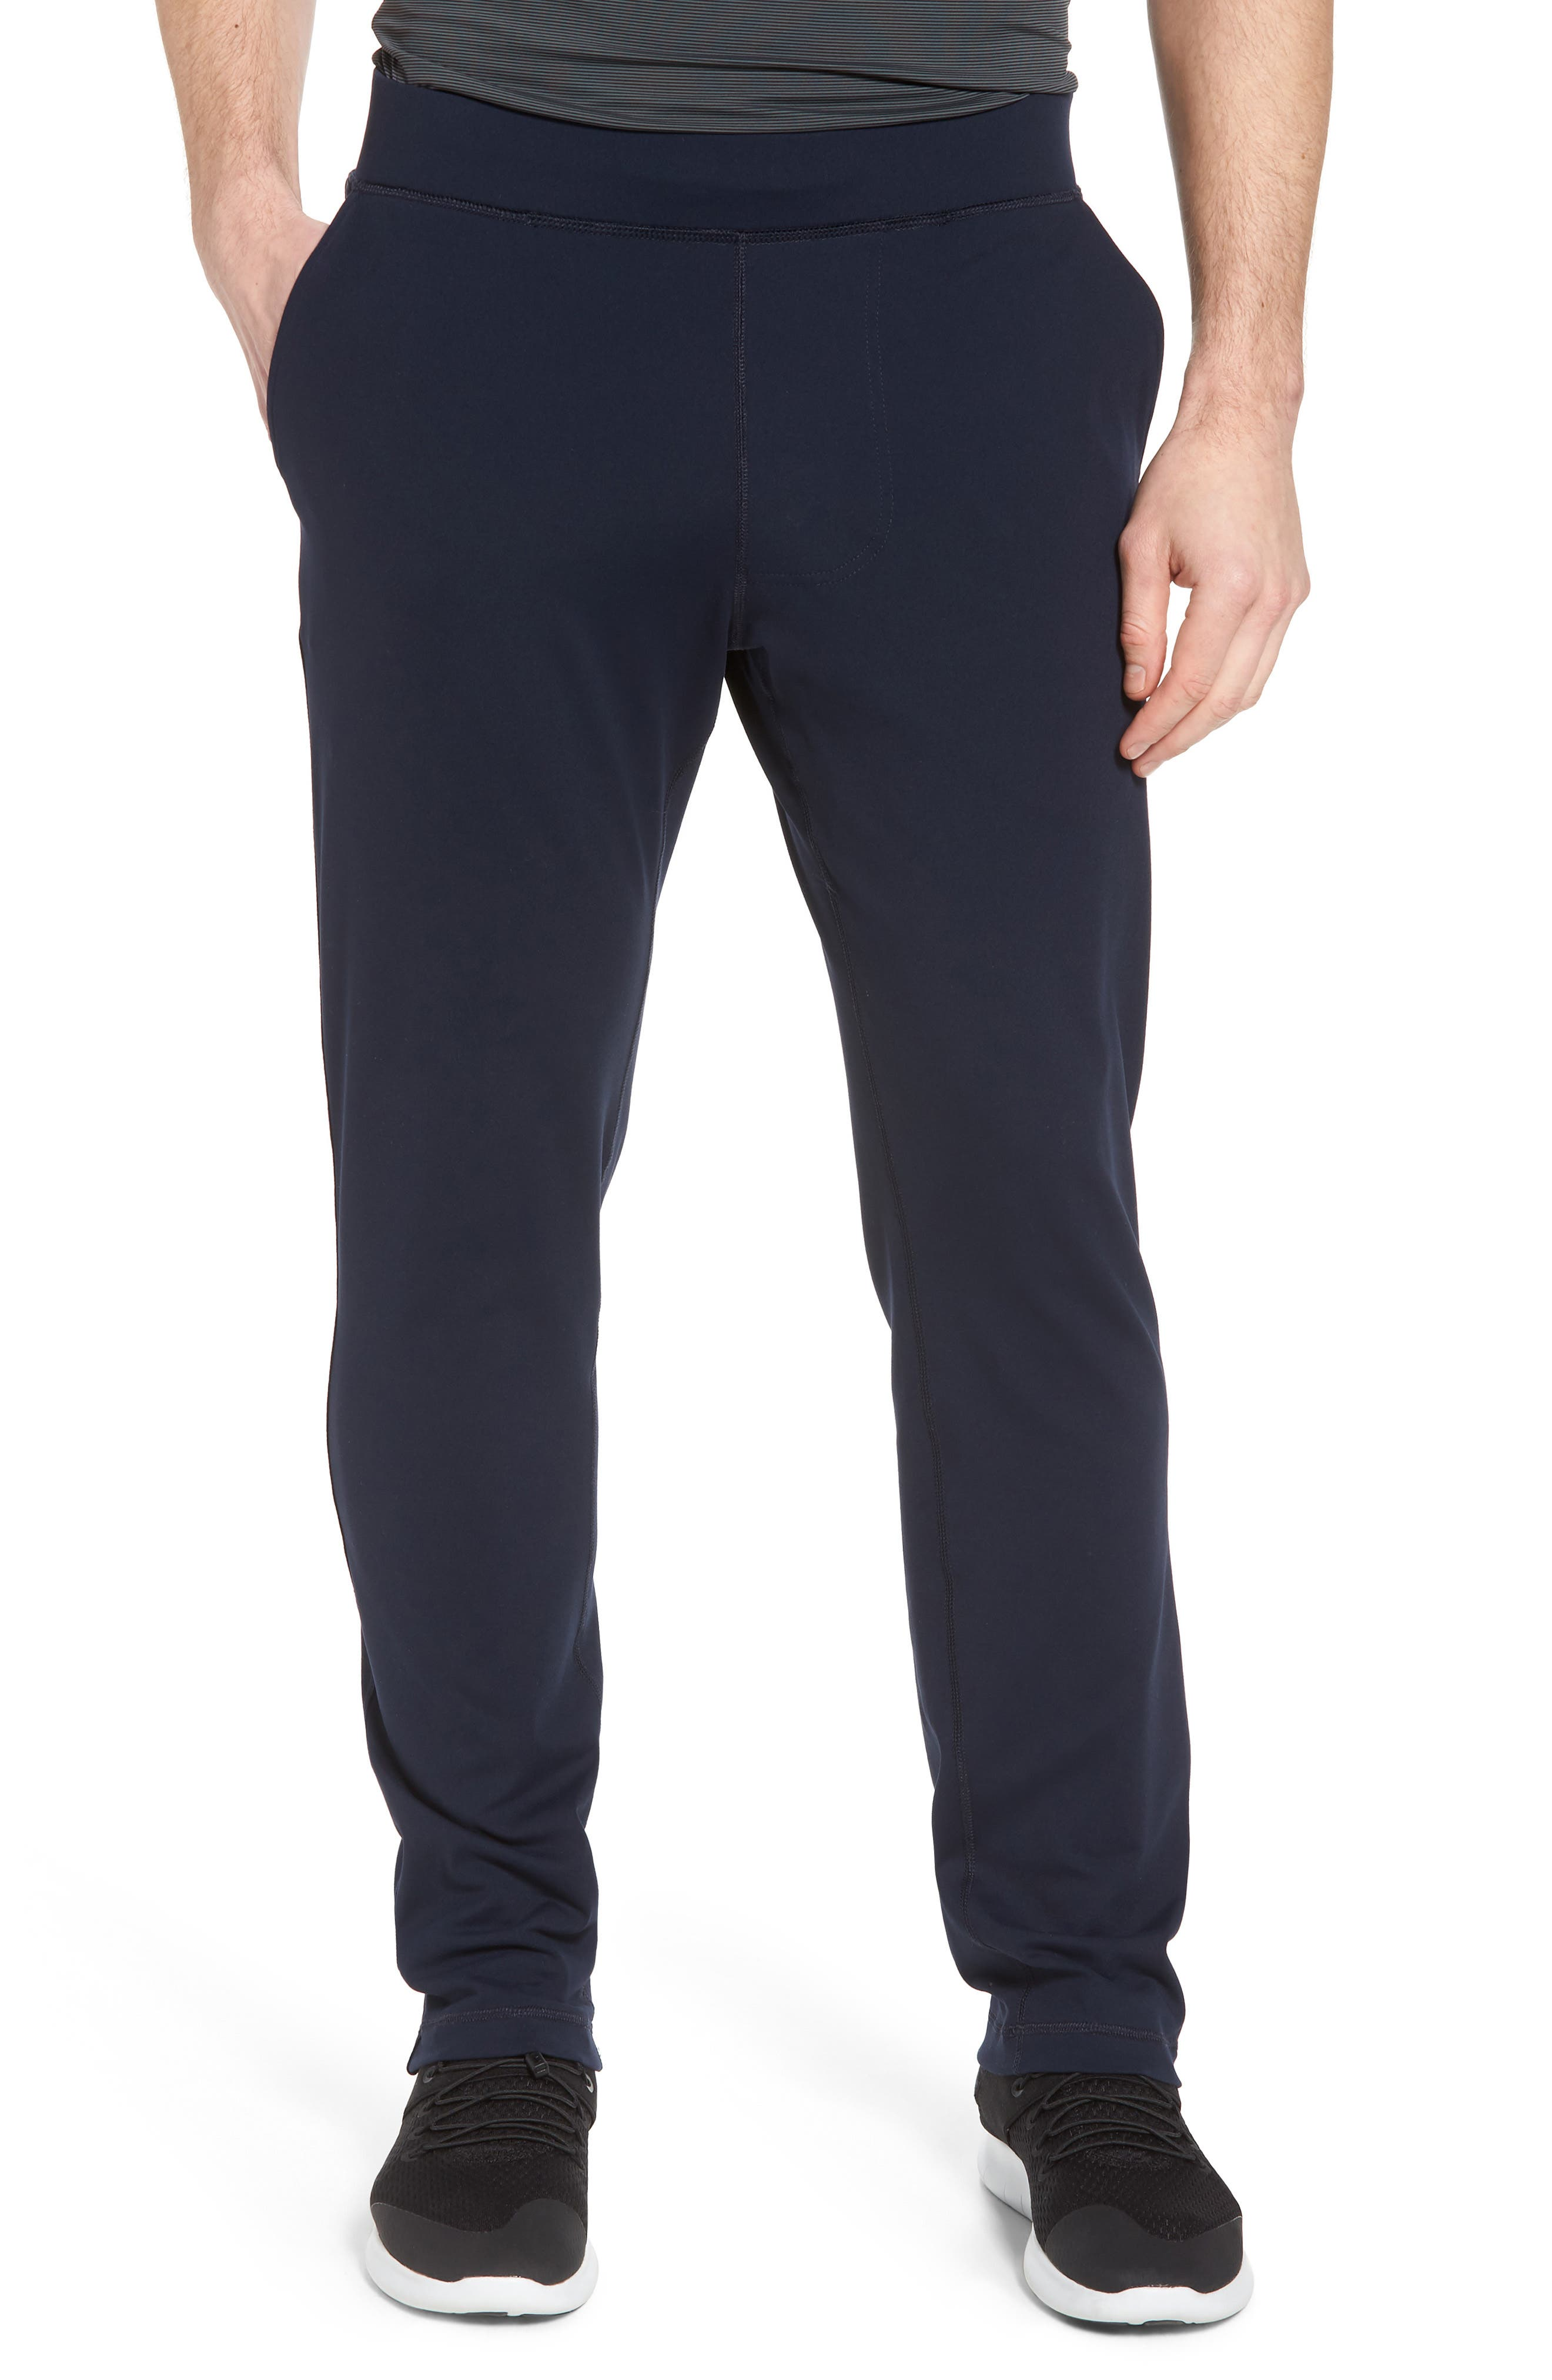 206 Pants,                             Main thumbnail 1, color,                             Navy